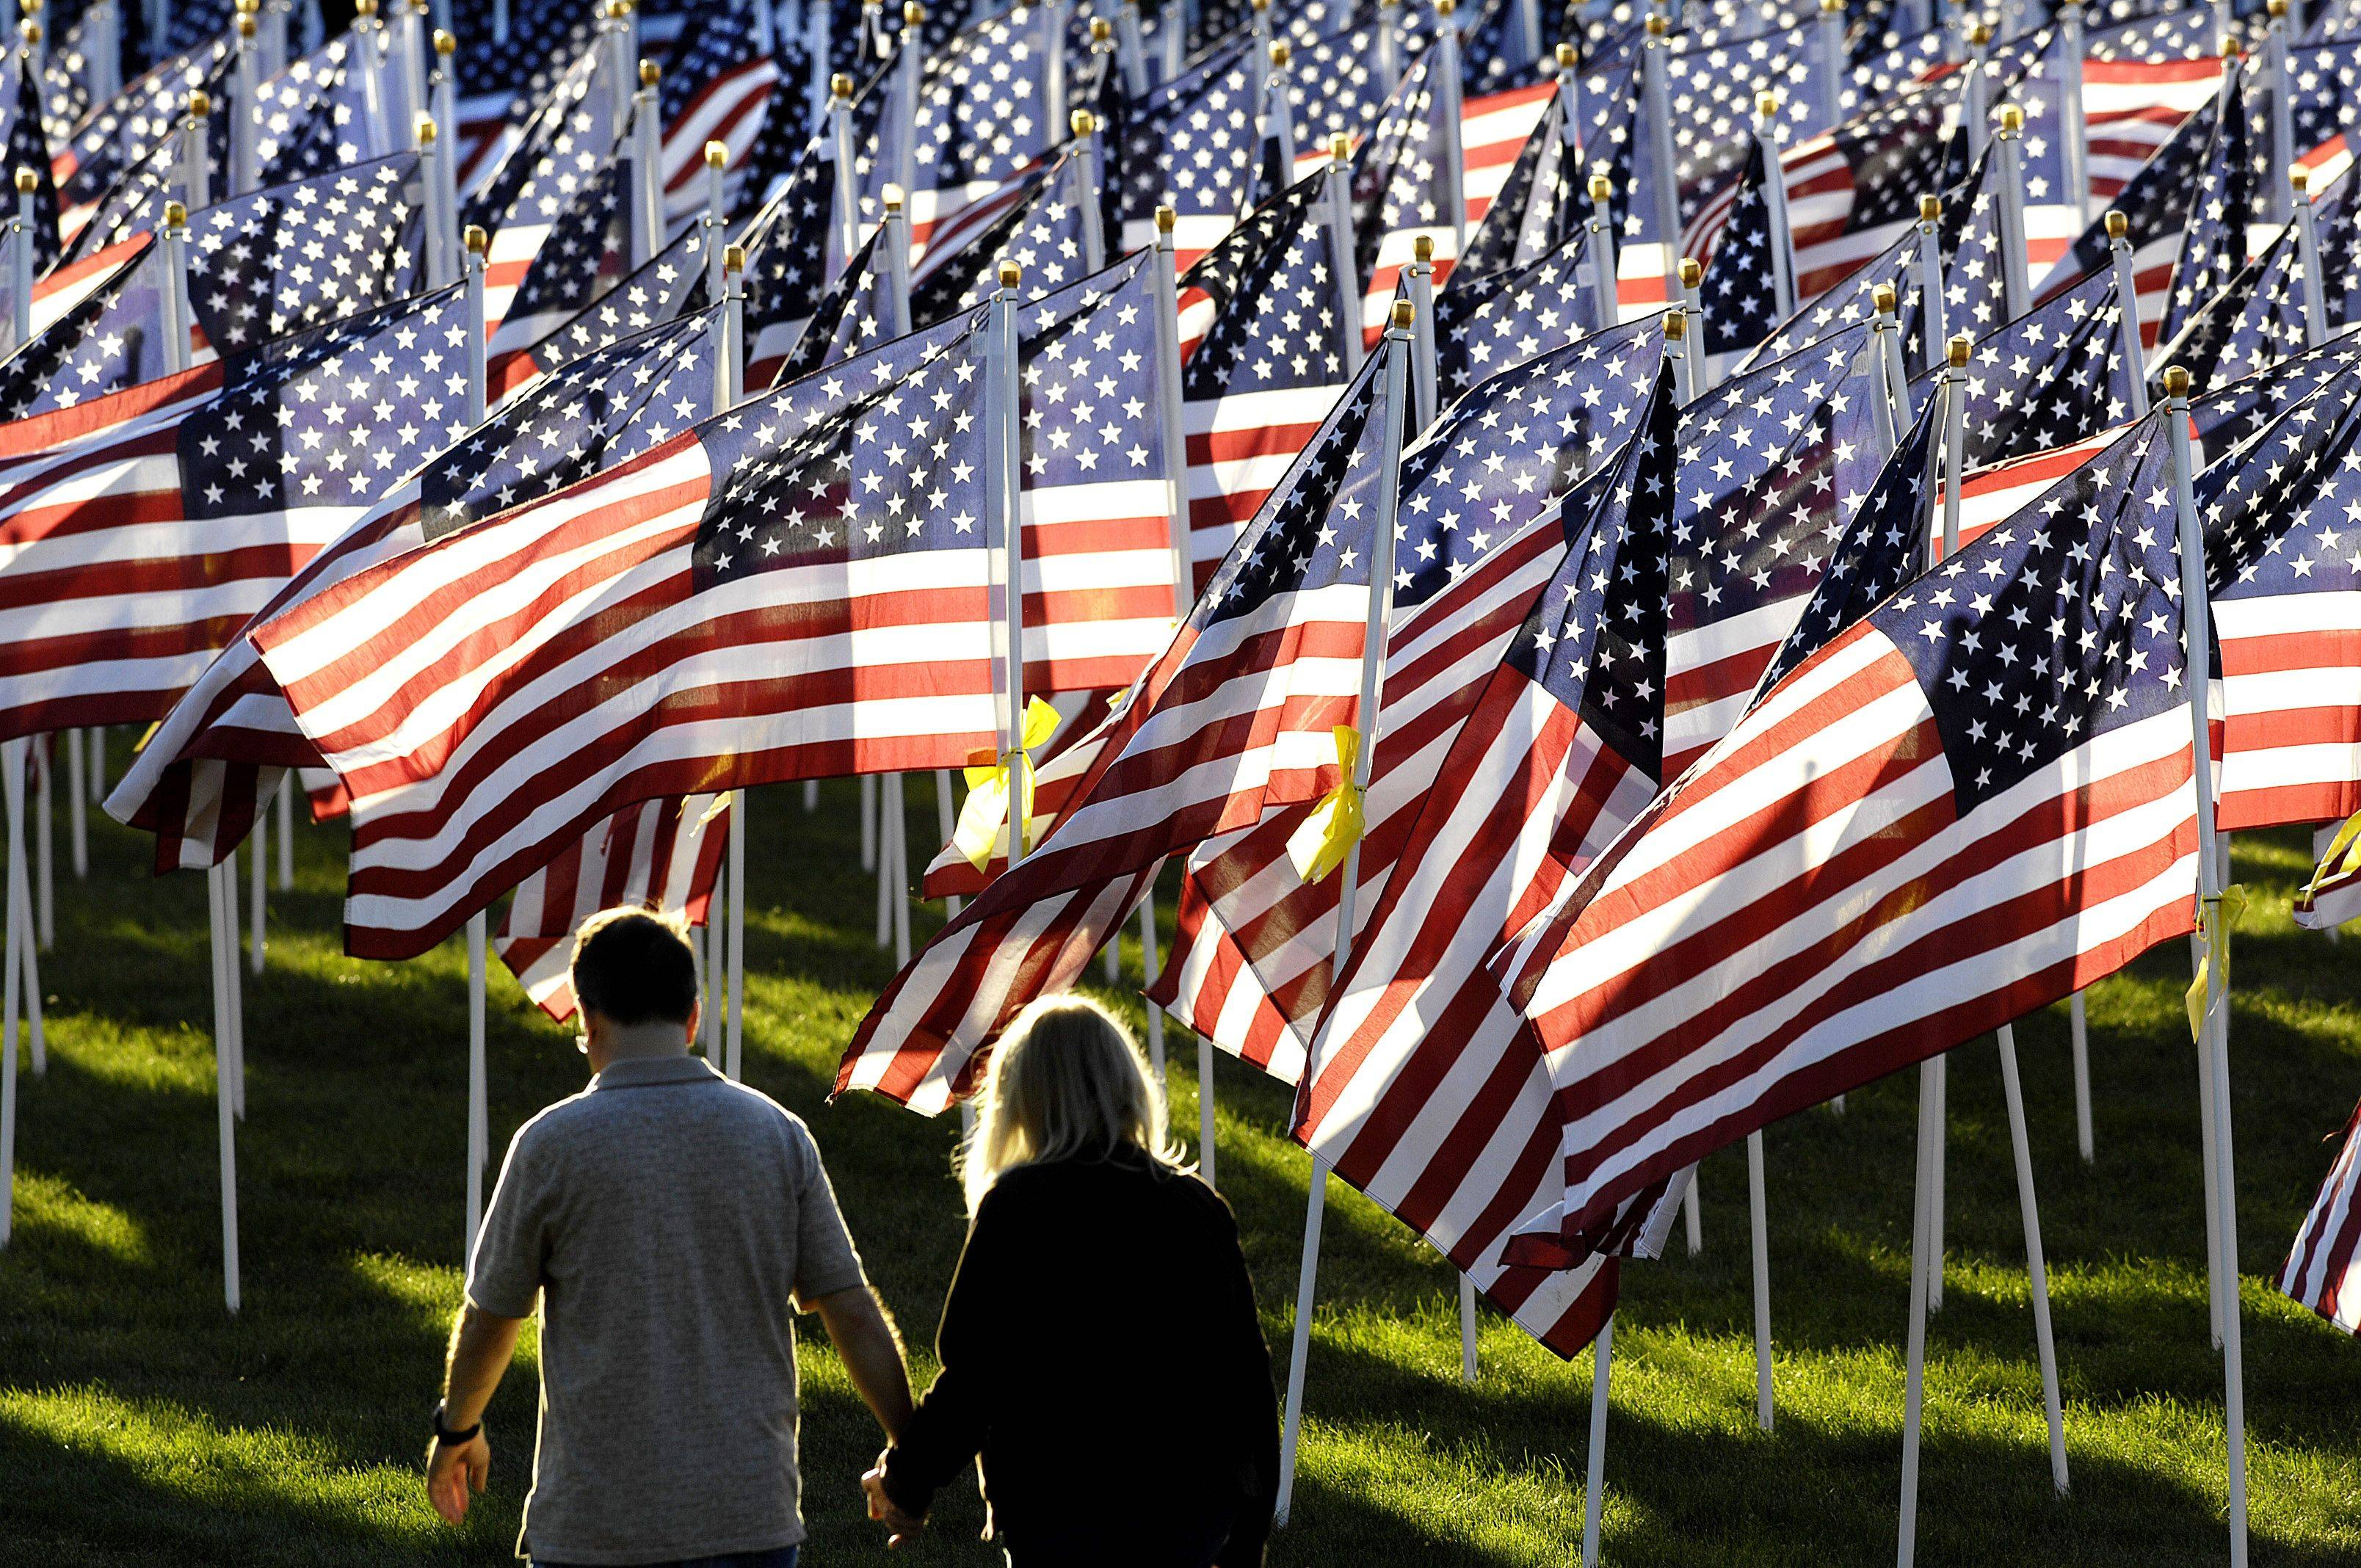 A couple hold hands in Carpenter park as they pass 2976 American Flags at a Healing Field event in Carpentersville Wednesday evening. There is one flag for every person who died on September 11, 2001 in the terrorist attacks. The Healing Field event will run through the weekend and include a candlelight vigil Saturday night. It is presented by the Patriot Committee of Dundee Township.